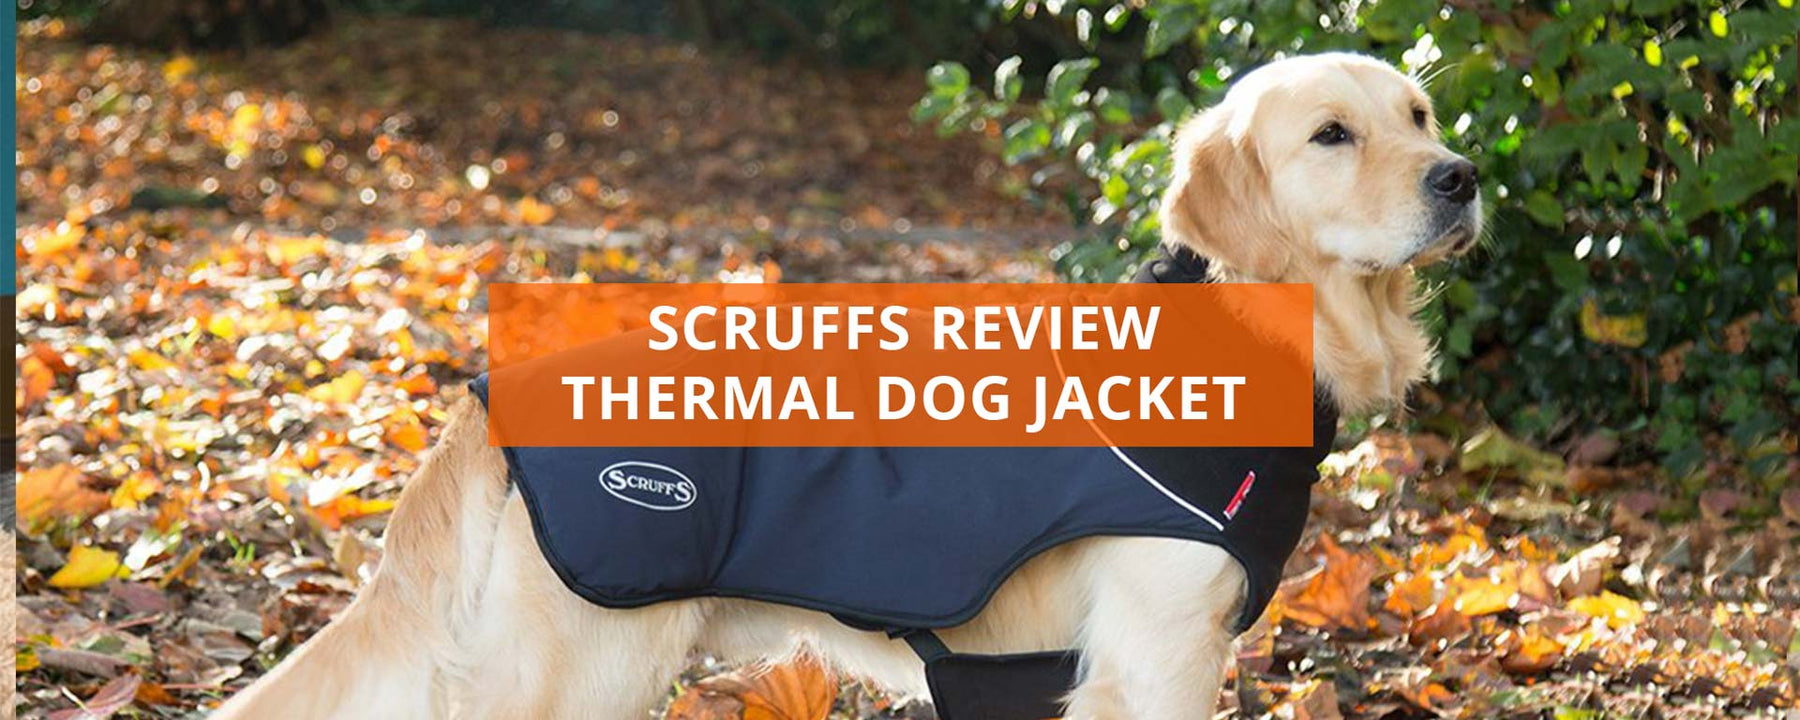 Scruffs Thermal Dog Jacket Review